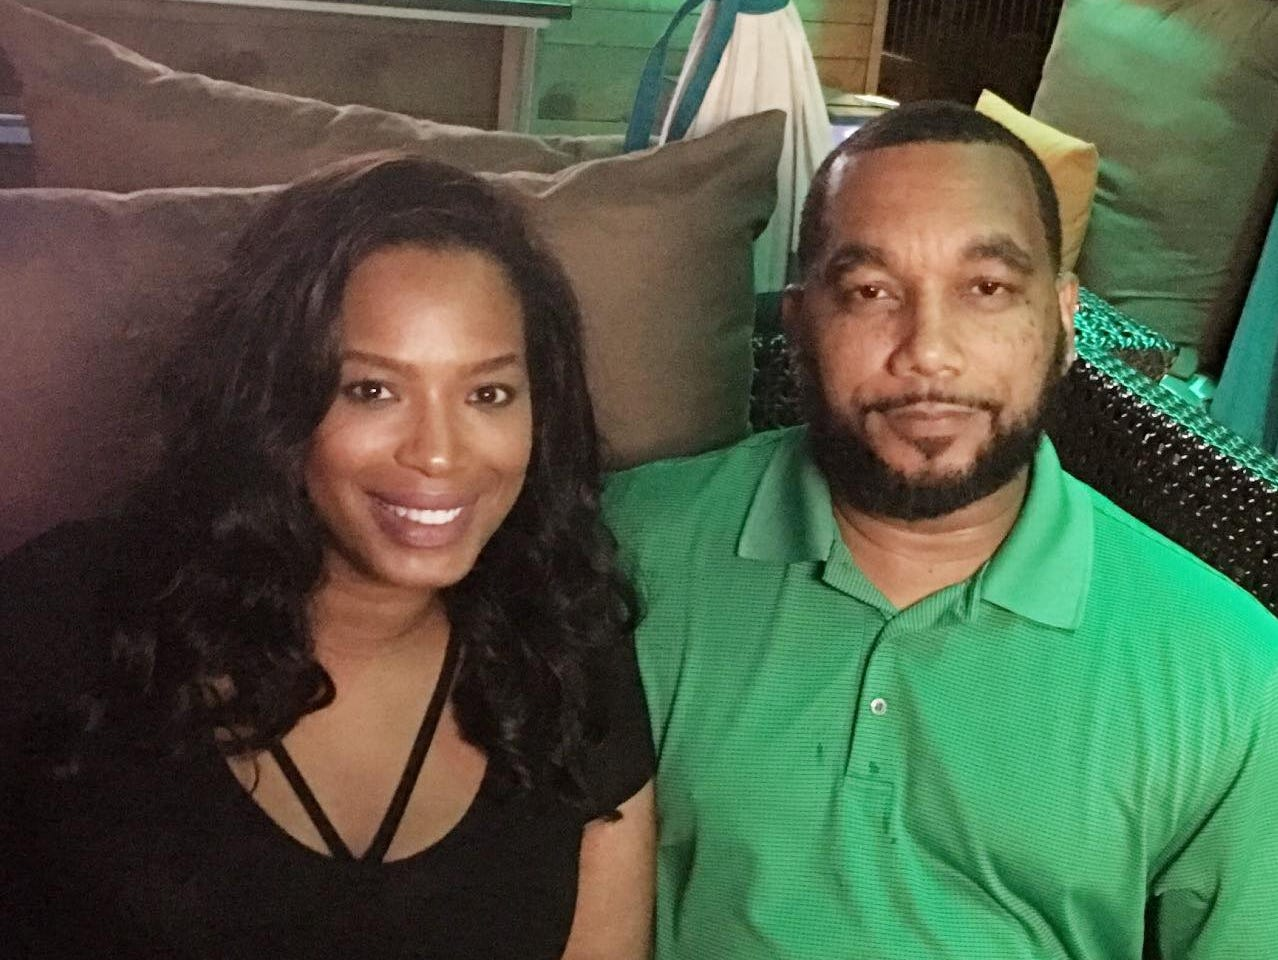 Raychelle and Trey Lowe are opening a brick-and-mortar location for Mack's Hot Chicken. The 24-seat restaurant will be located at 12978 Old Nashville Highway in Smyrna.